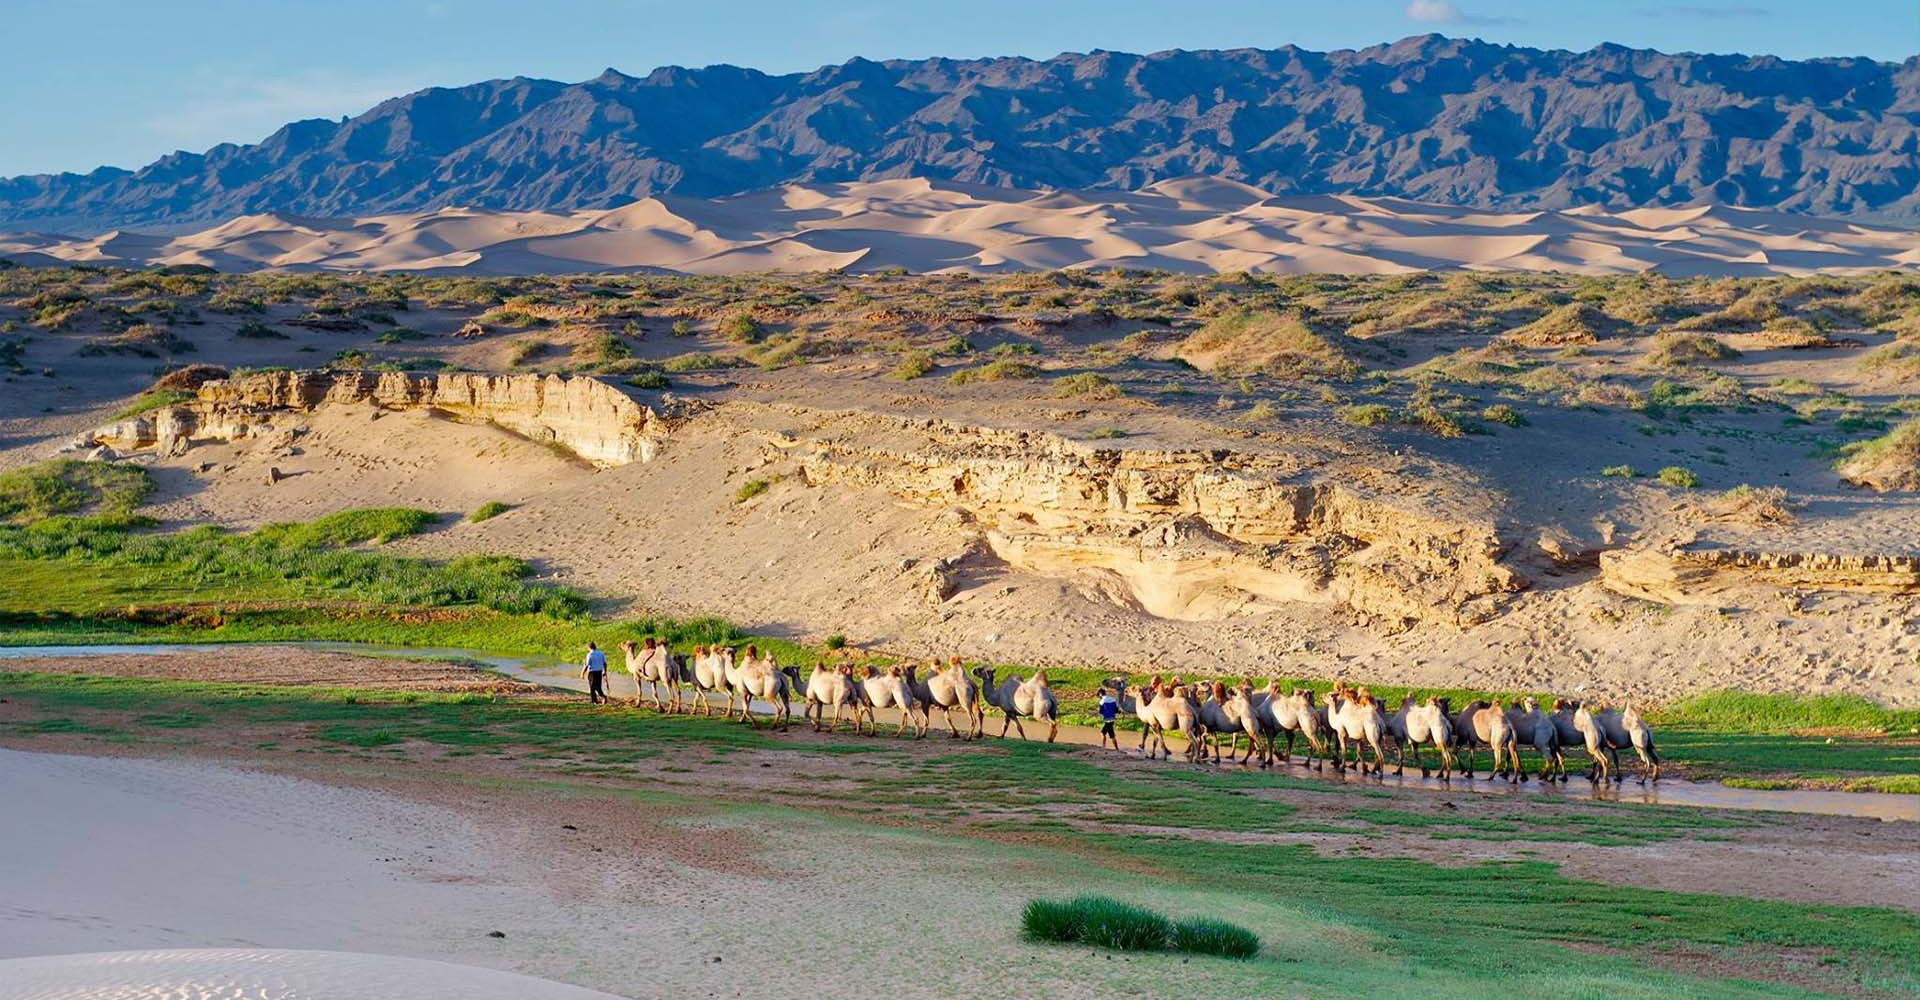 Southern Altai Gobi Strictly Protected Area